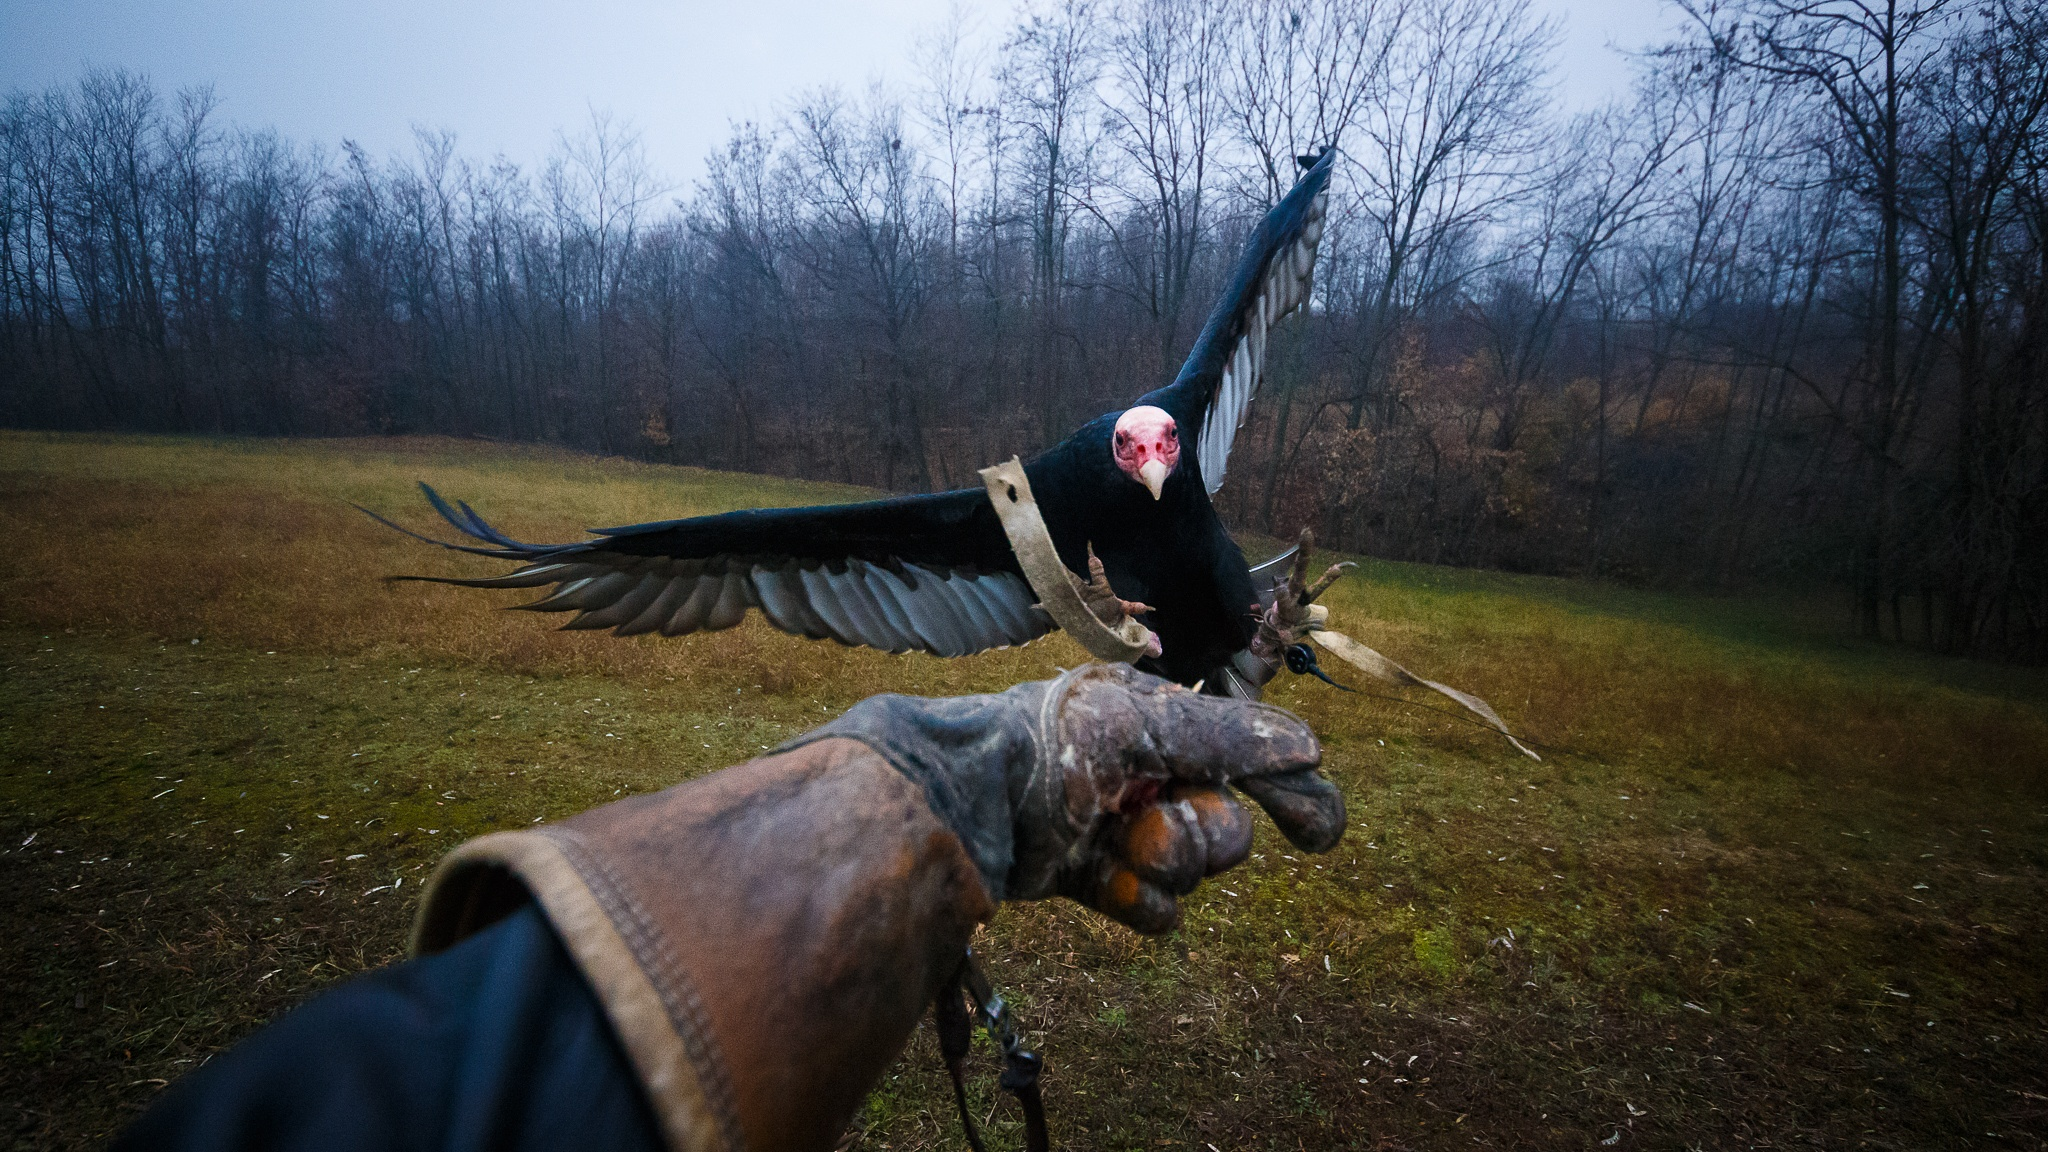 A turkey vulture on my glove by Andrea Martinez